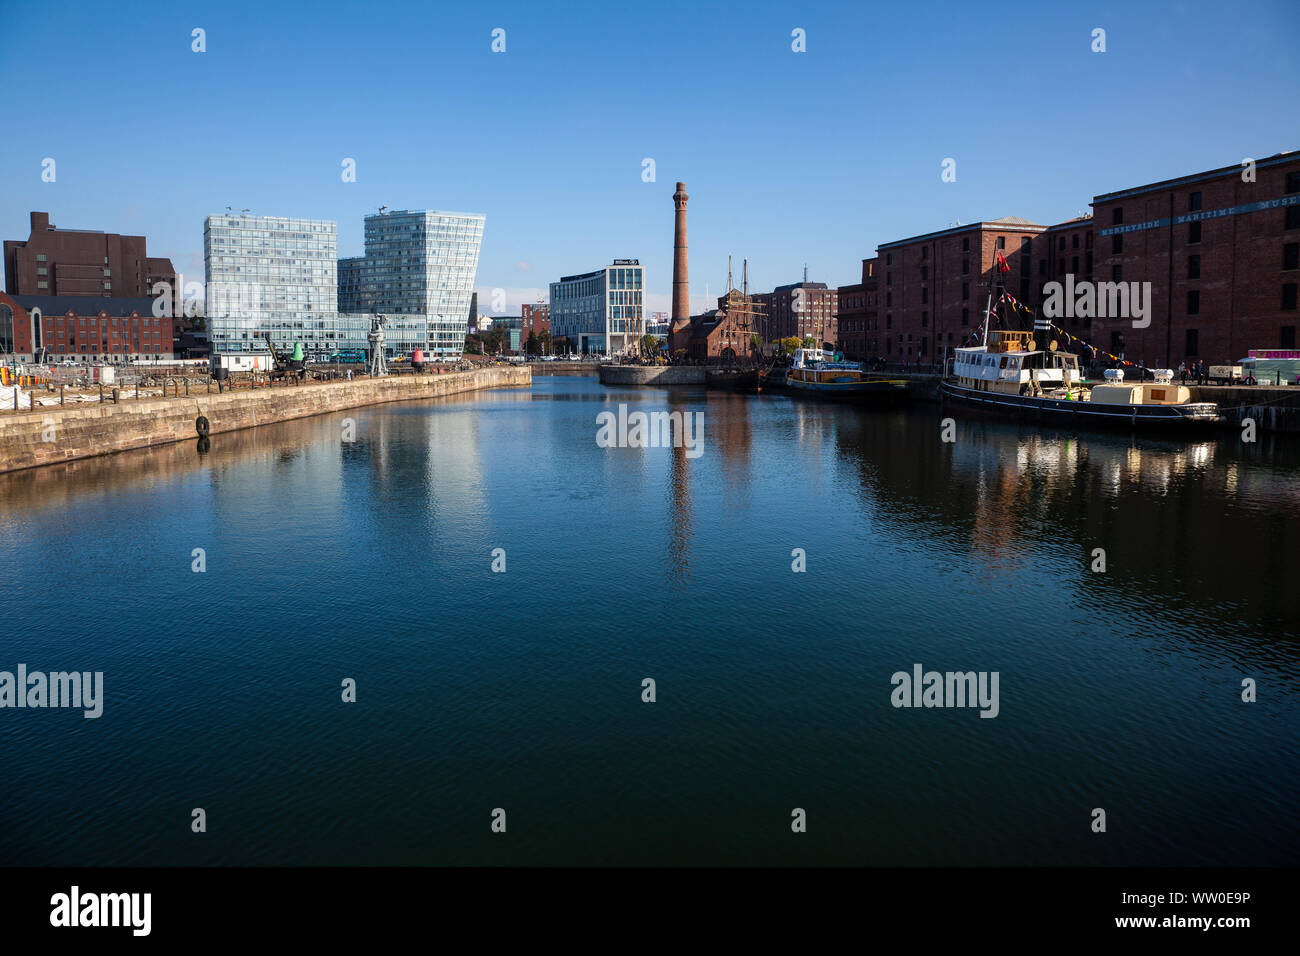 A view of the Royal Albert Dock, Liverpool, U.K. following a complete regenerative transformation in 1988 and now one of the most visited attractions Stock Photo